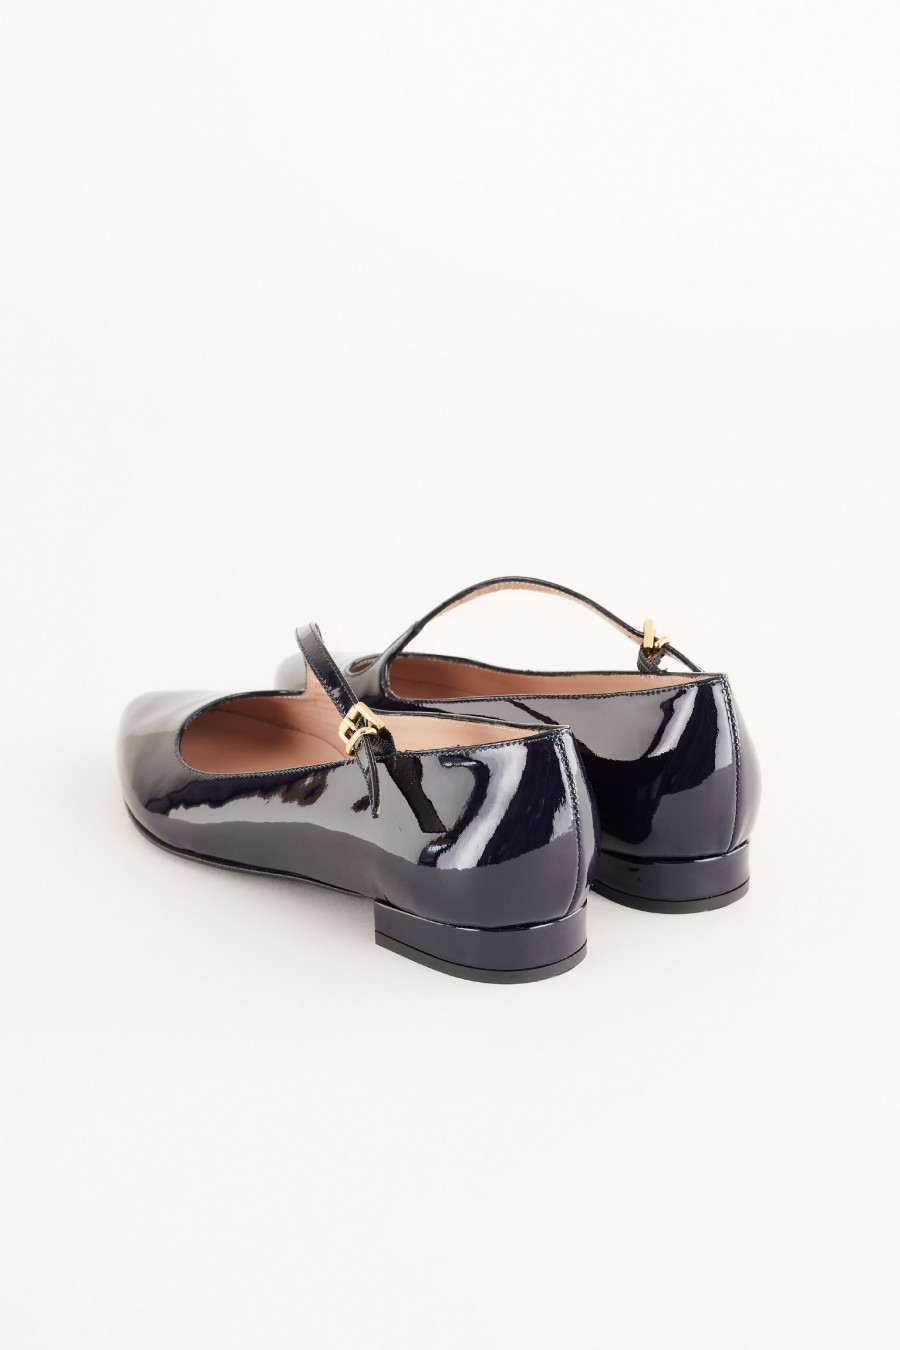 flats in blue patent leather